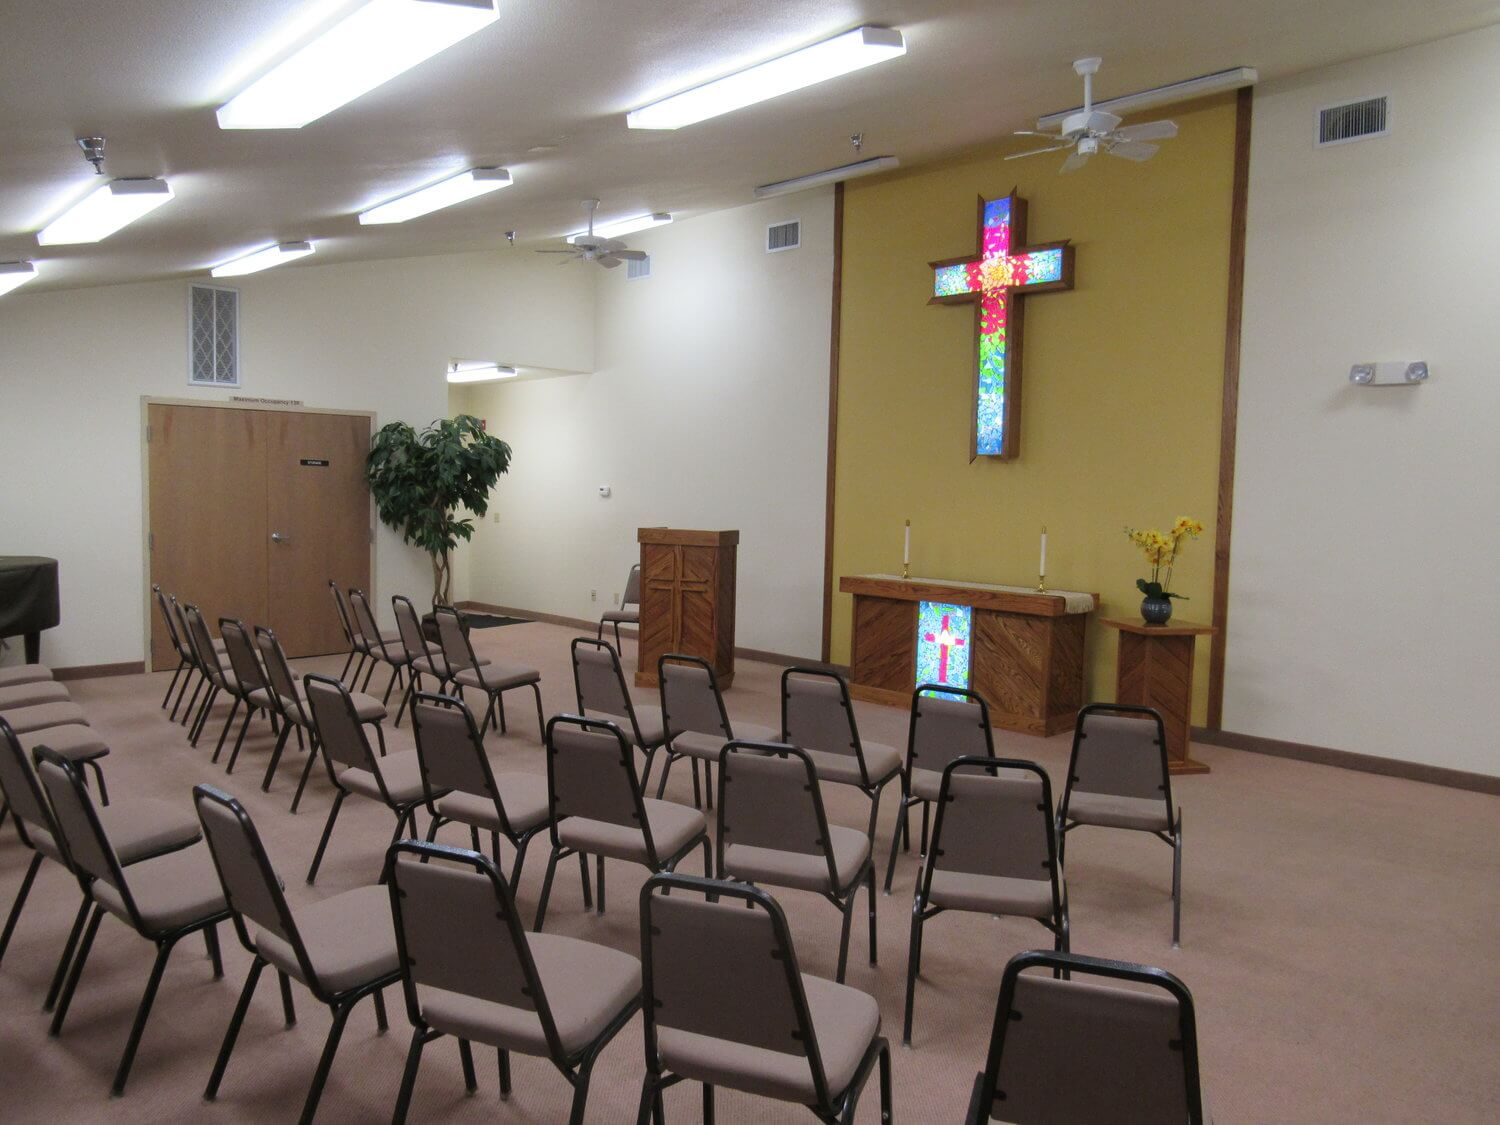 The chapel for Monday night worship